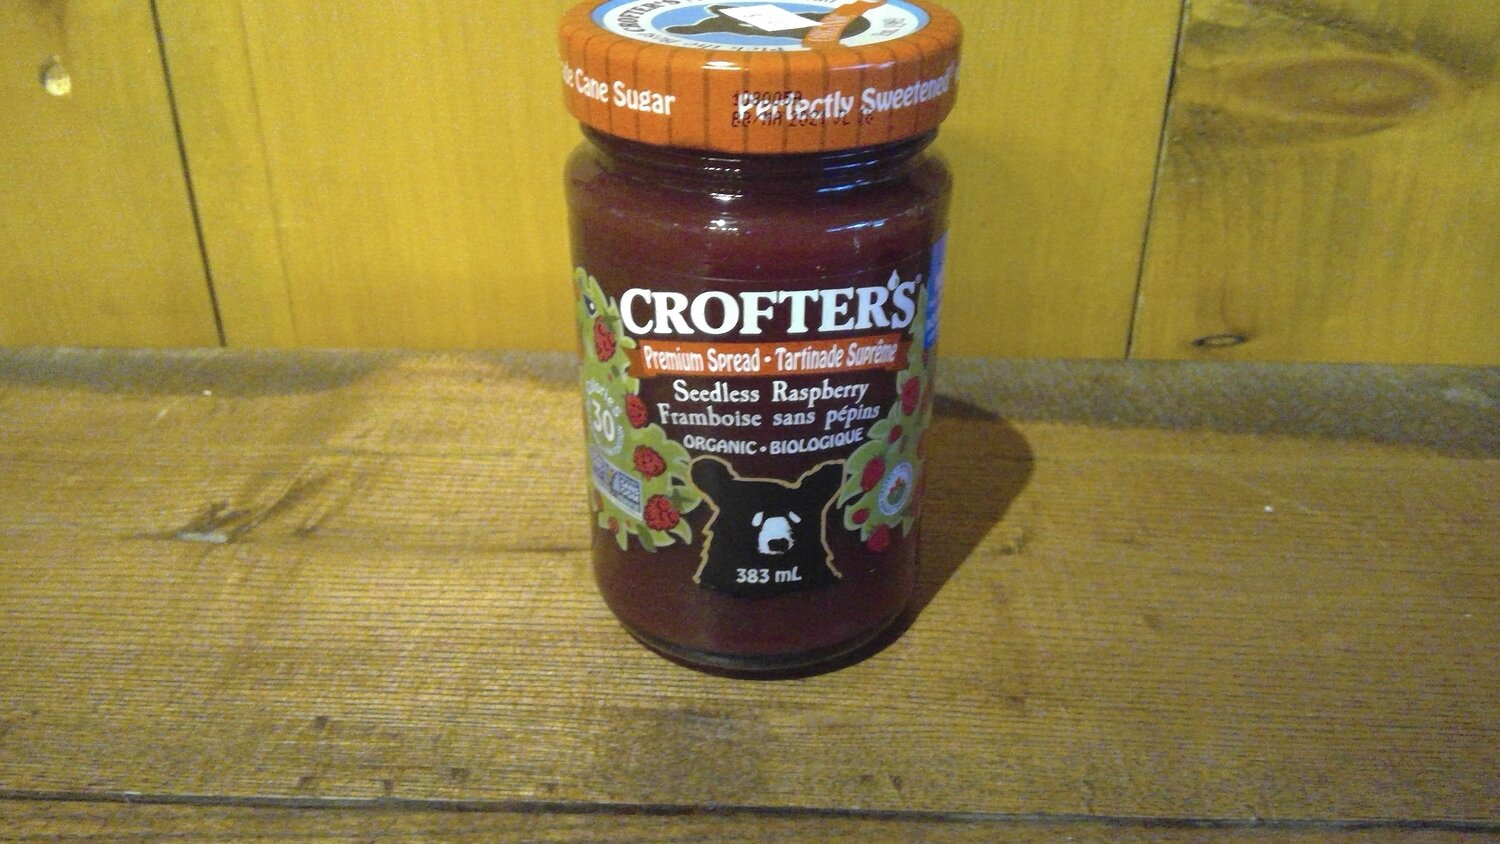 Crofter's - Seedless Raspberry Jam 383ml